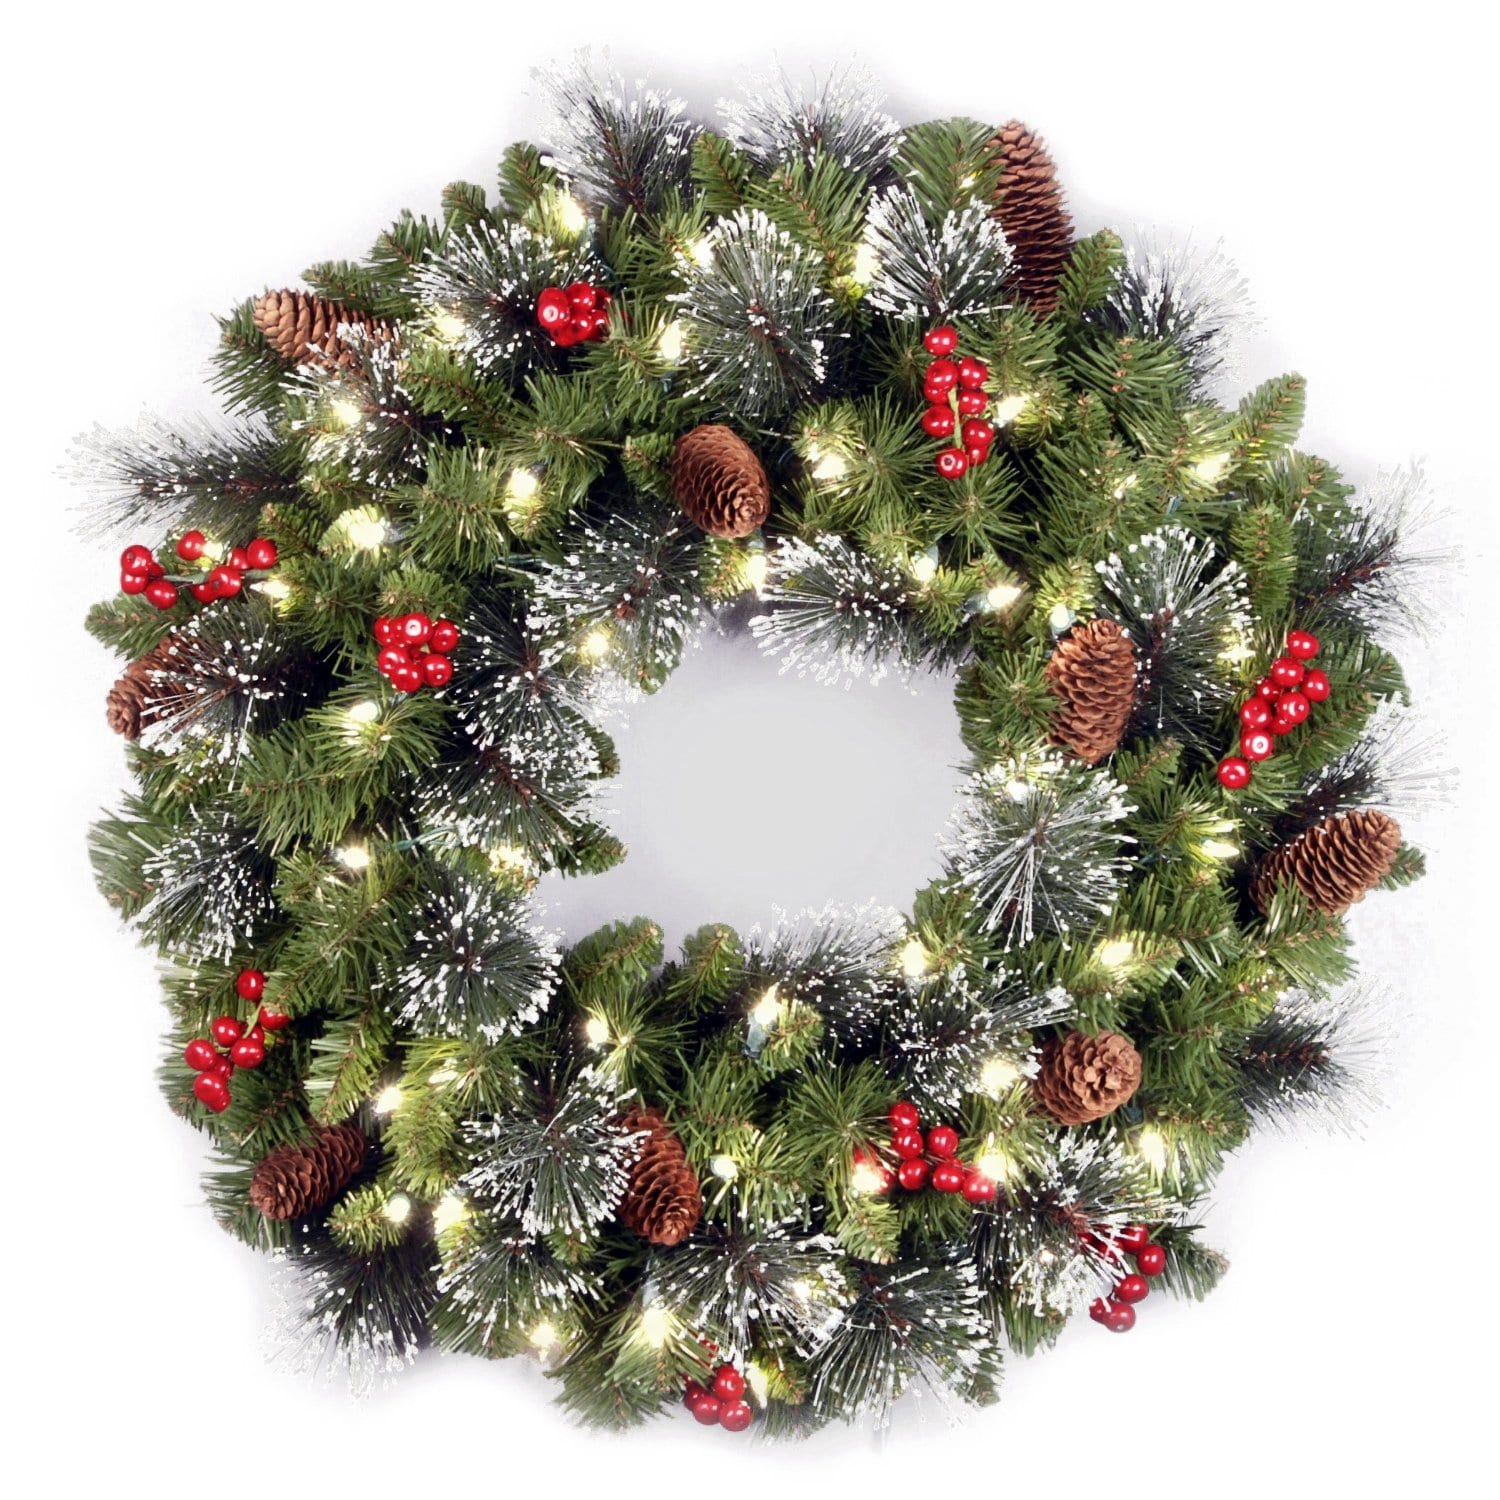 24 inch crestwood spruce decorated wreath buy it here for 25 best christmas wreaths - Artificial Christmas Wreaths Decorated